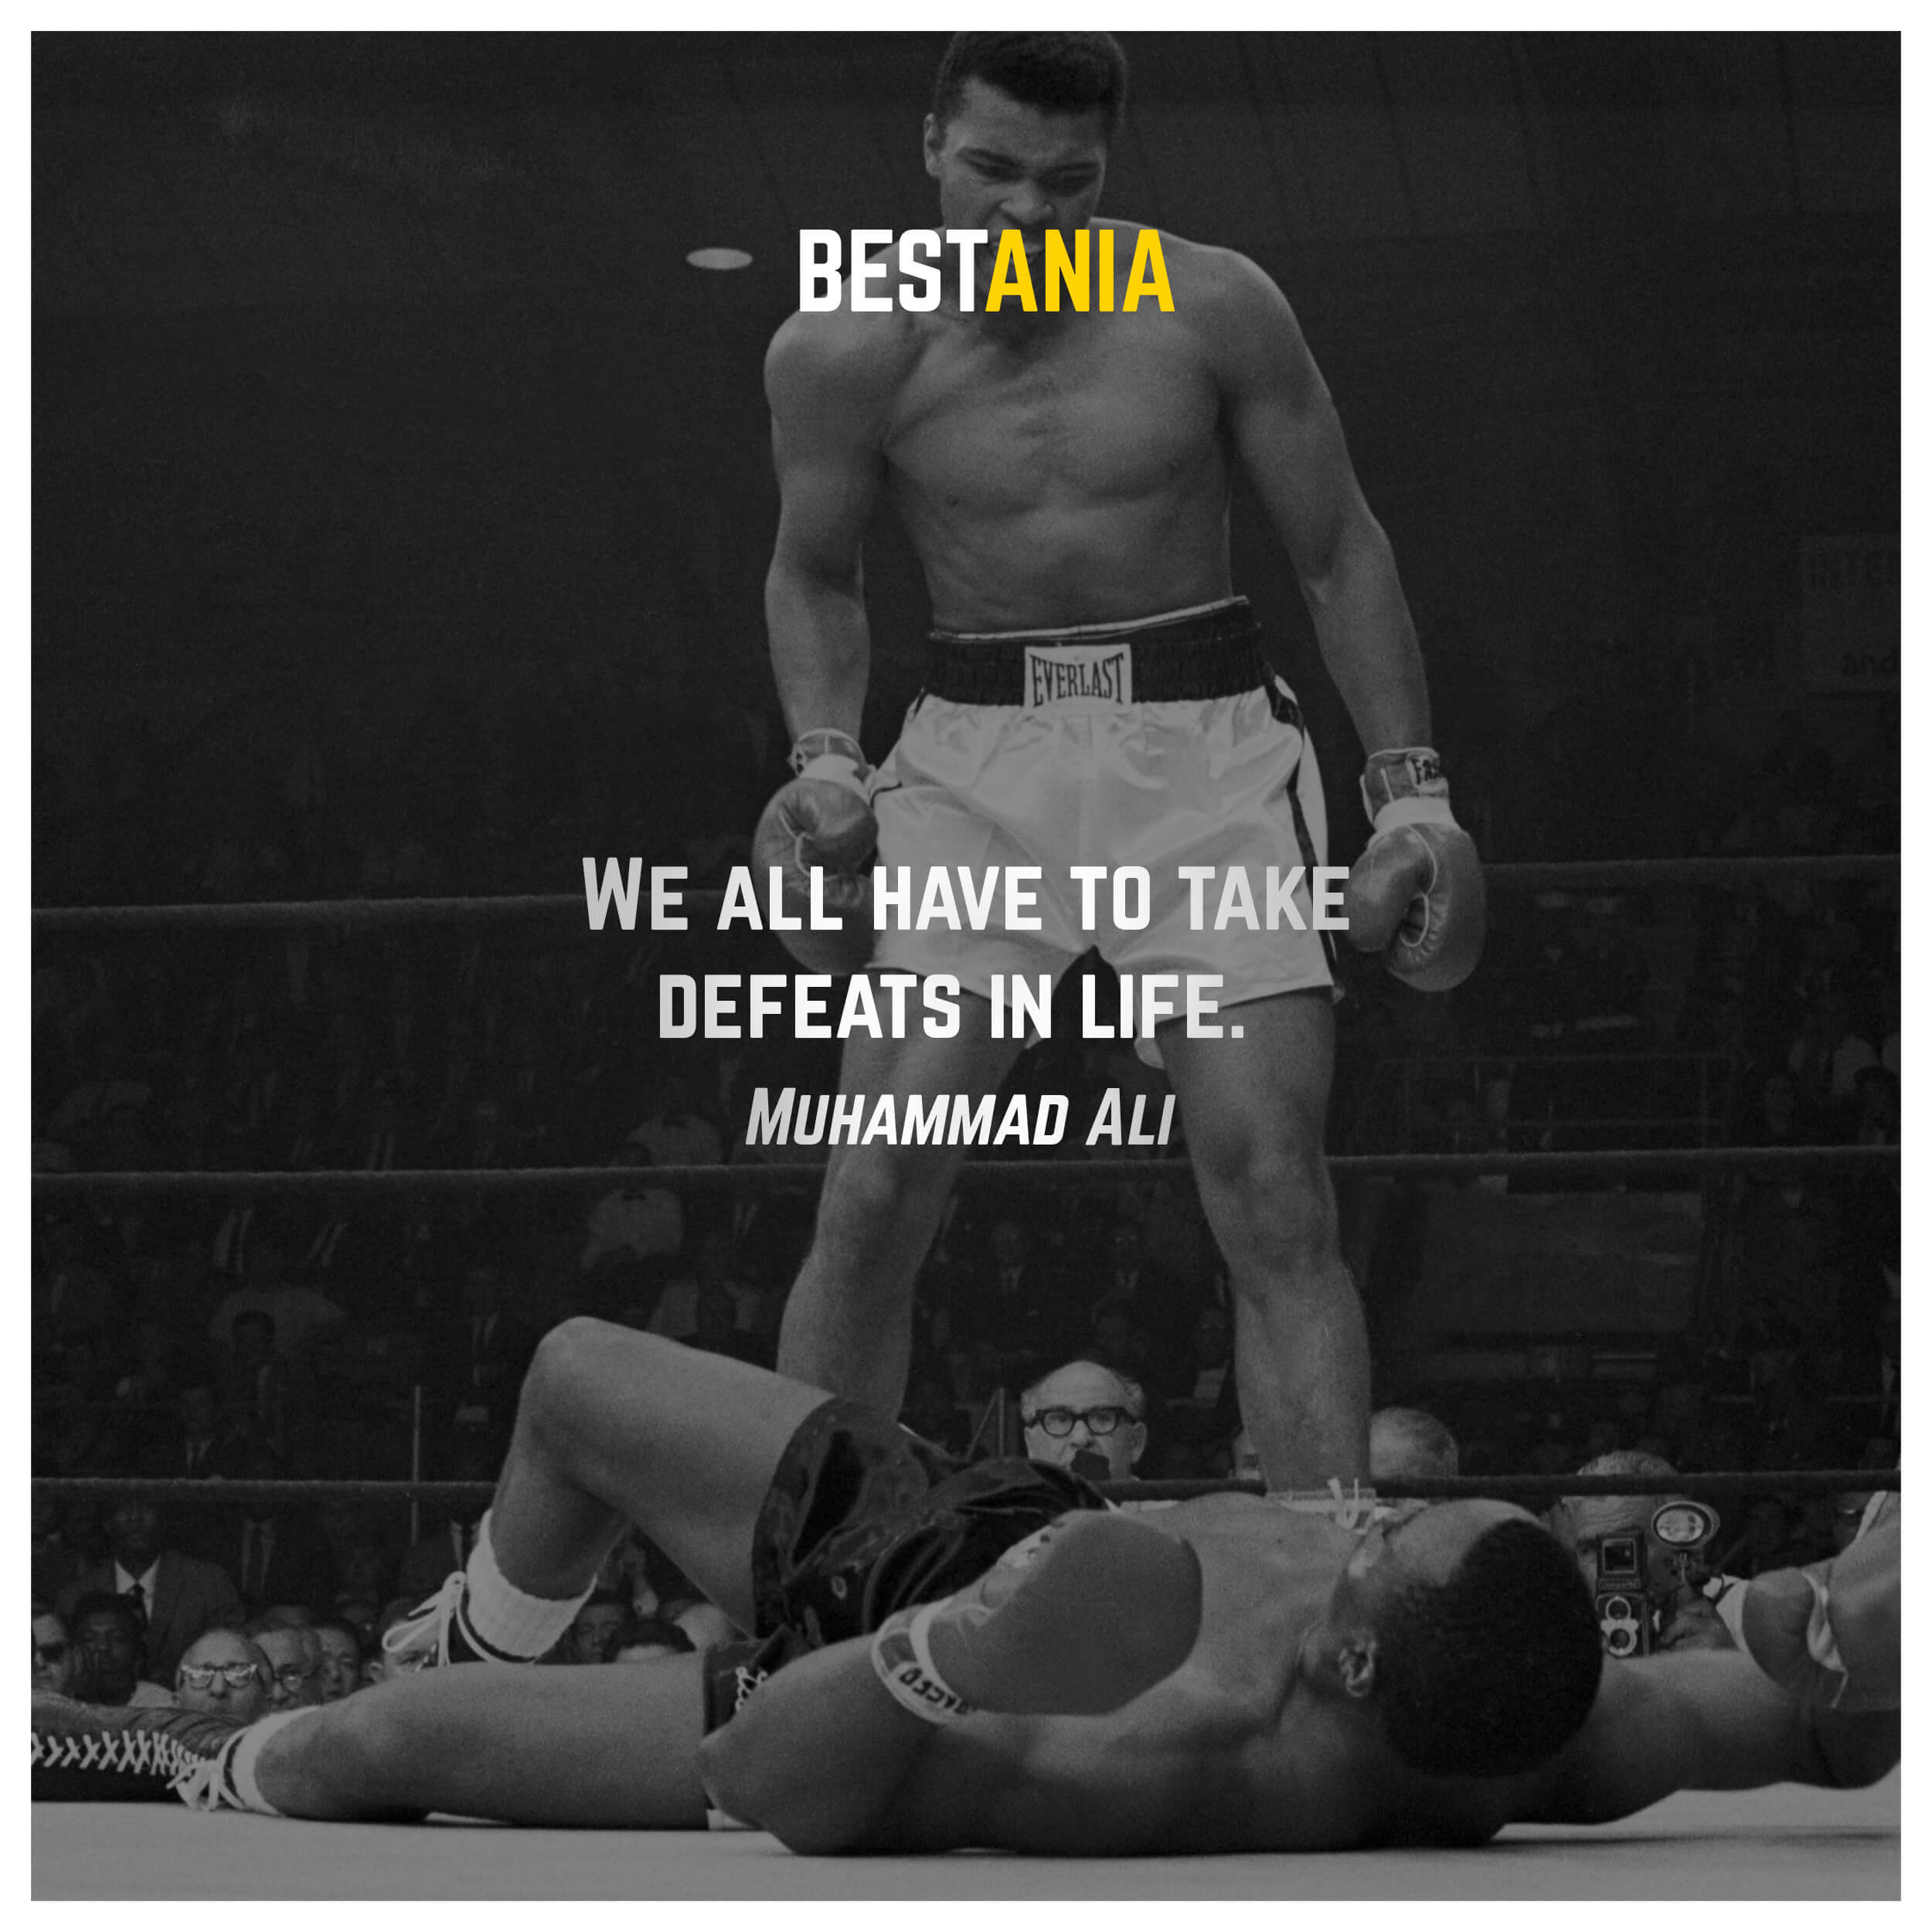 We all have to take defeats in life. Muhammad Ali